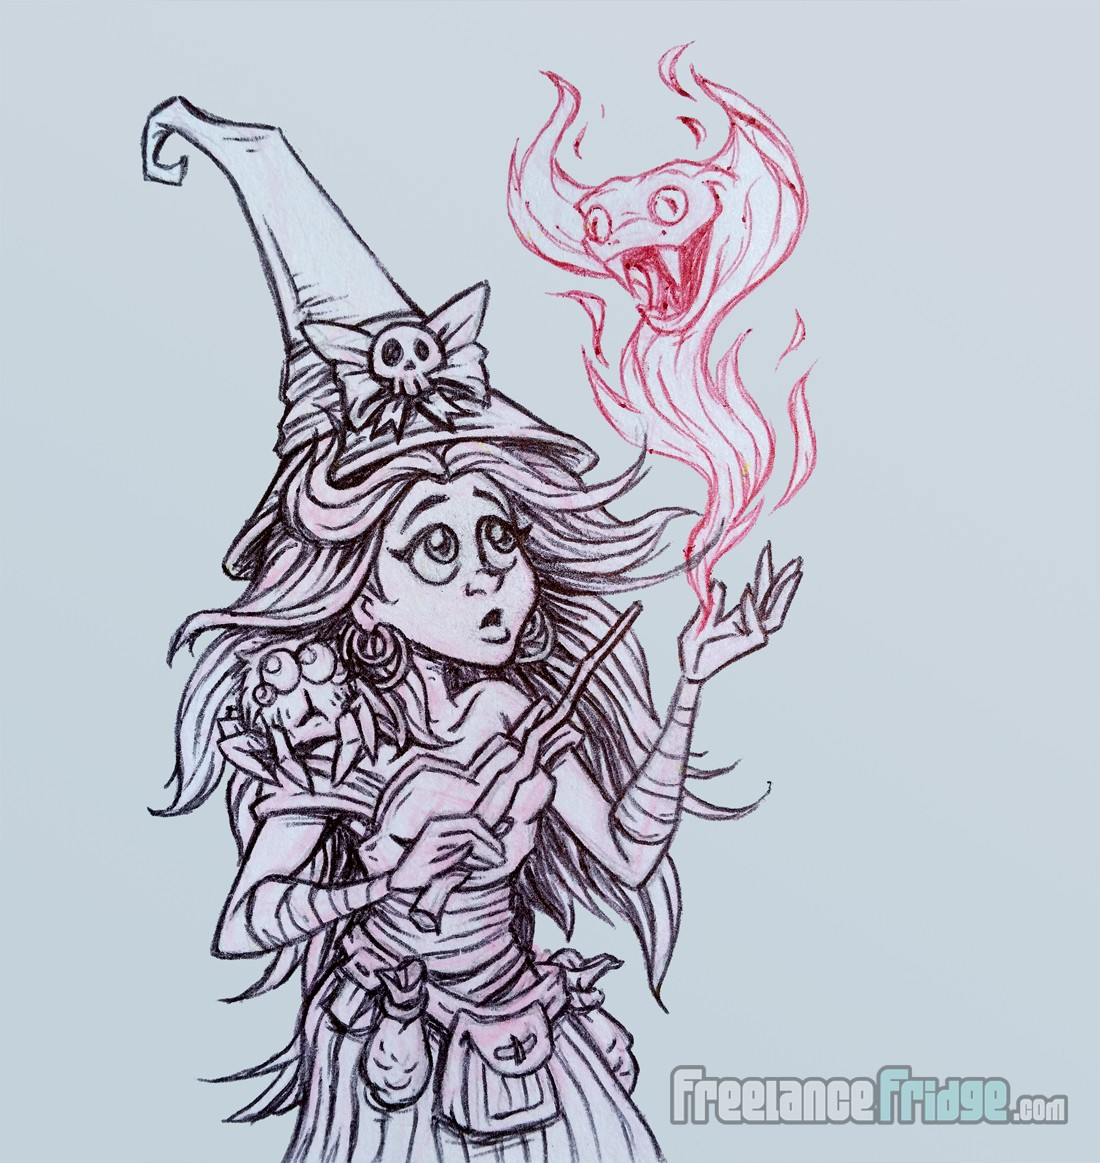 1100x1163 Cute Witch Sketch Freelance Fridge Illustration Amp Character Design